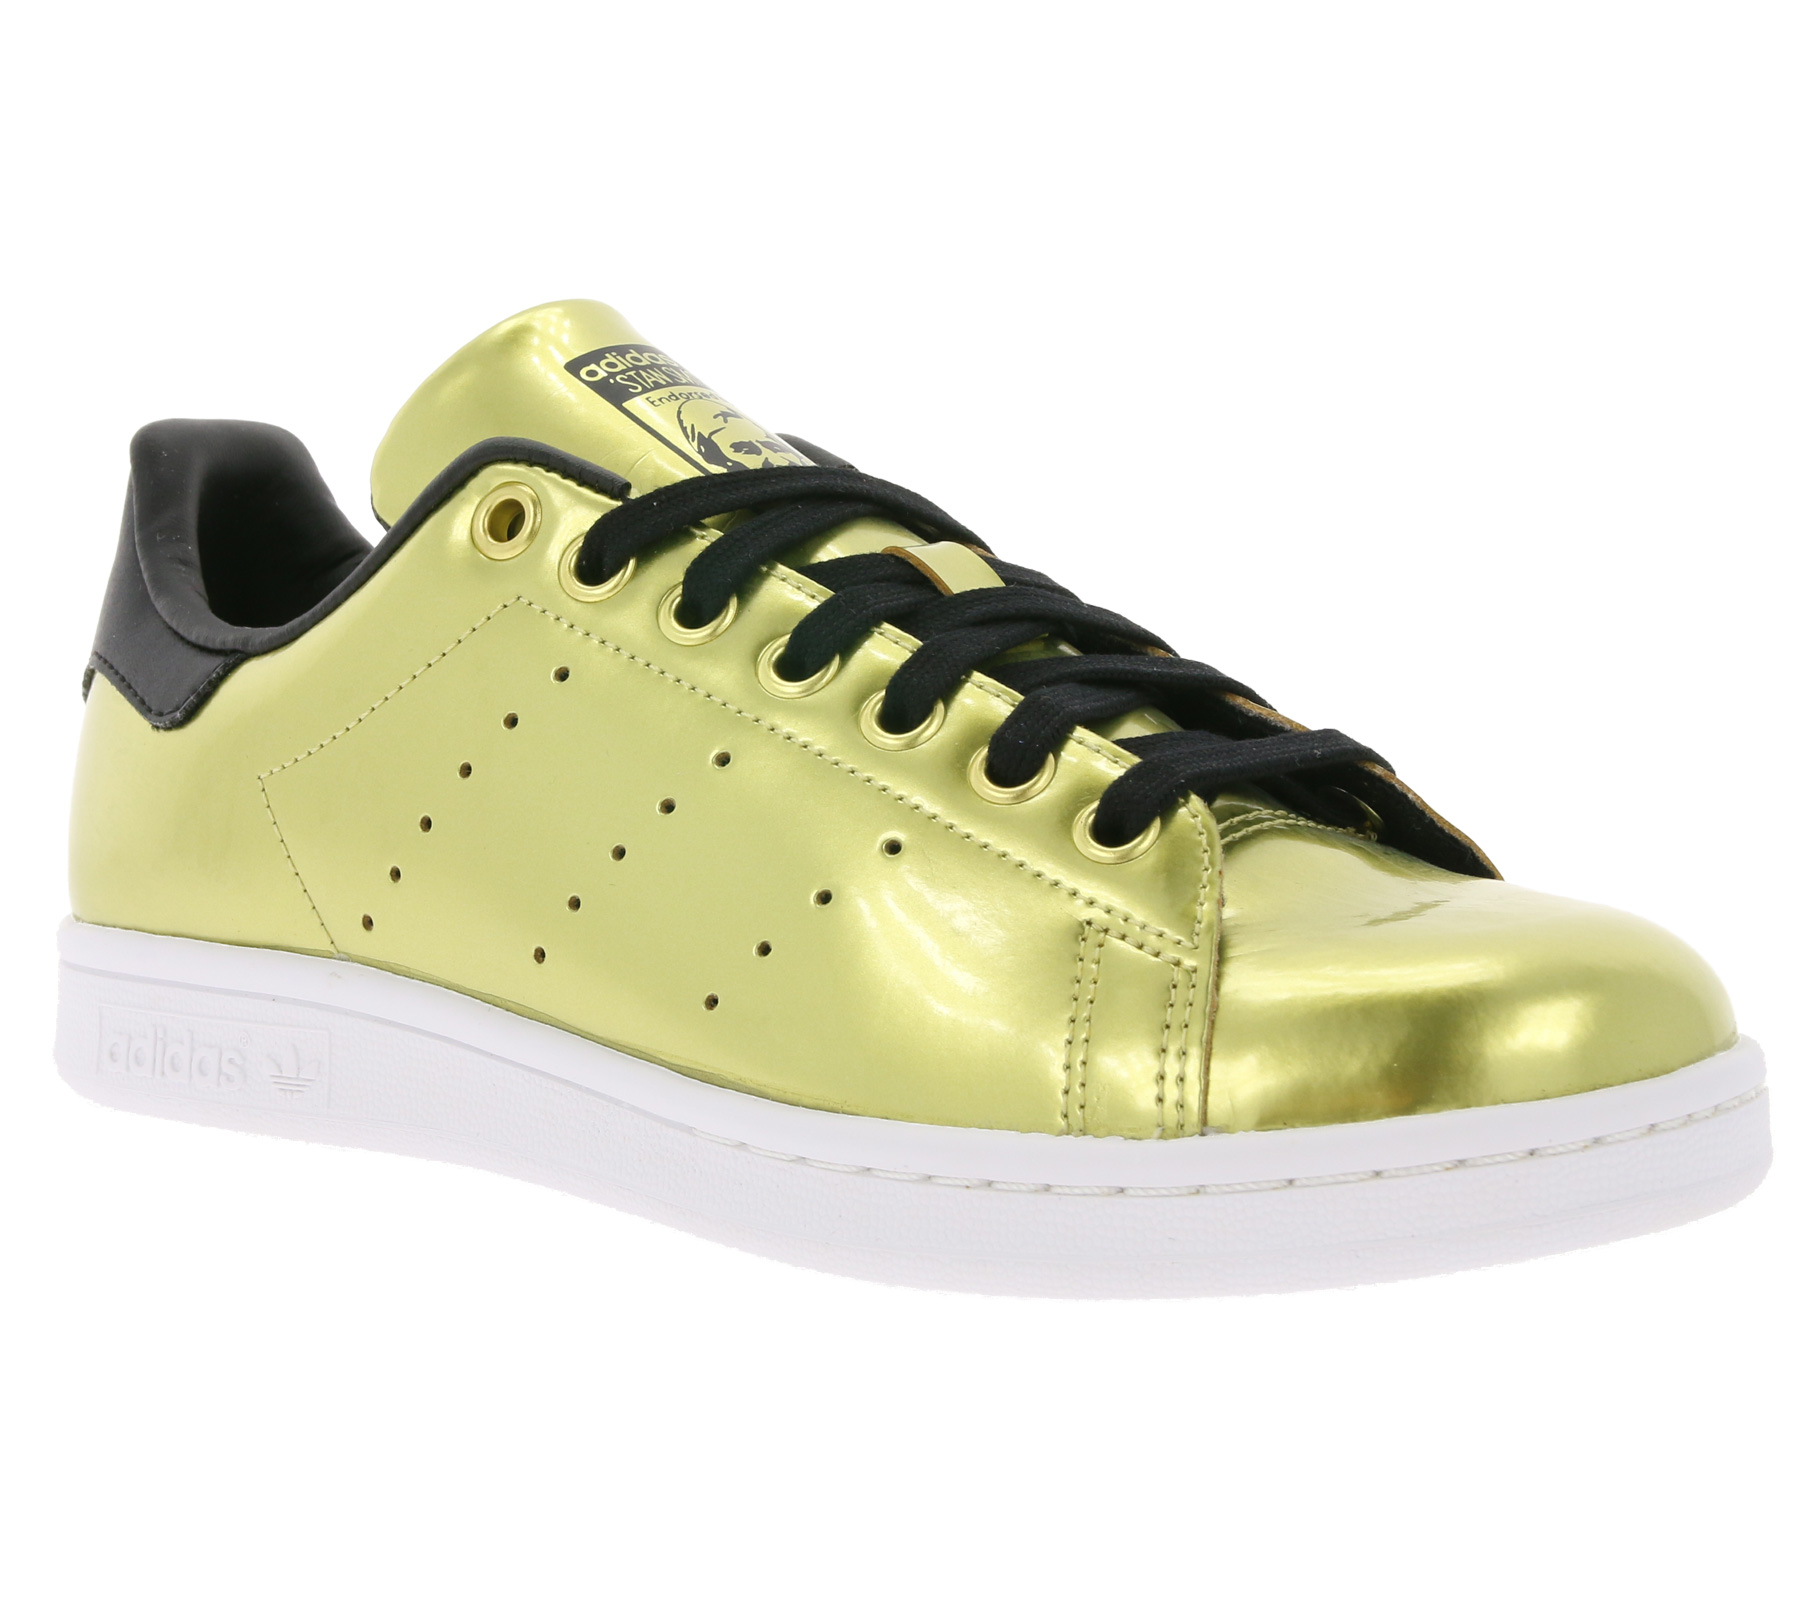 2de7bb44ecd537 adidas Originals Schuhe glänzende Damen Stan Smith W Sneaker Gold